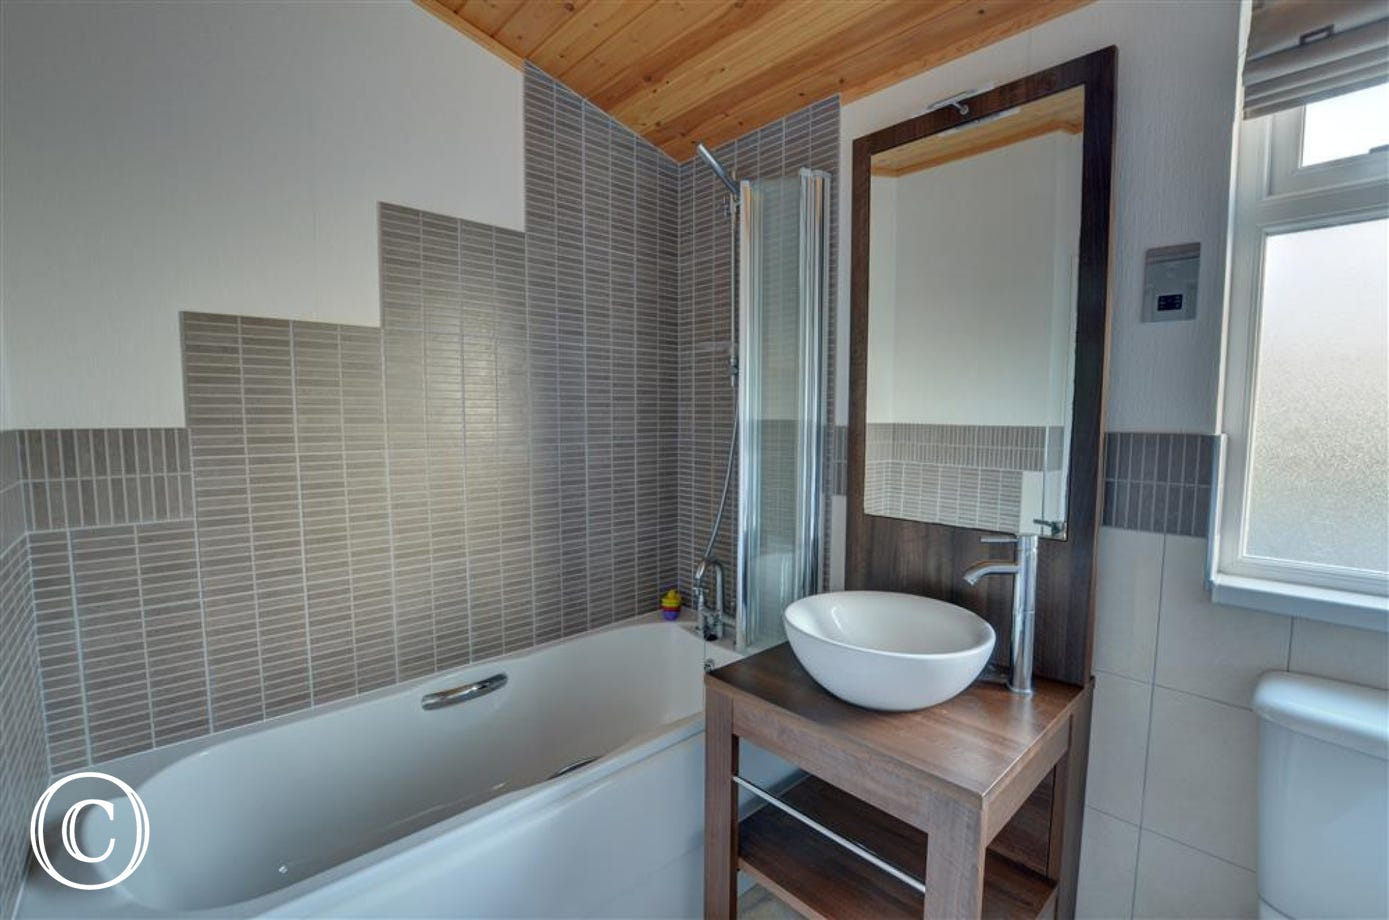 This main bathroom with modern tiling and over bath shower means you have a choice when it comes to revitalising ones self.